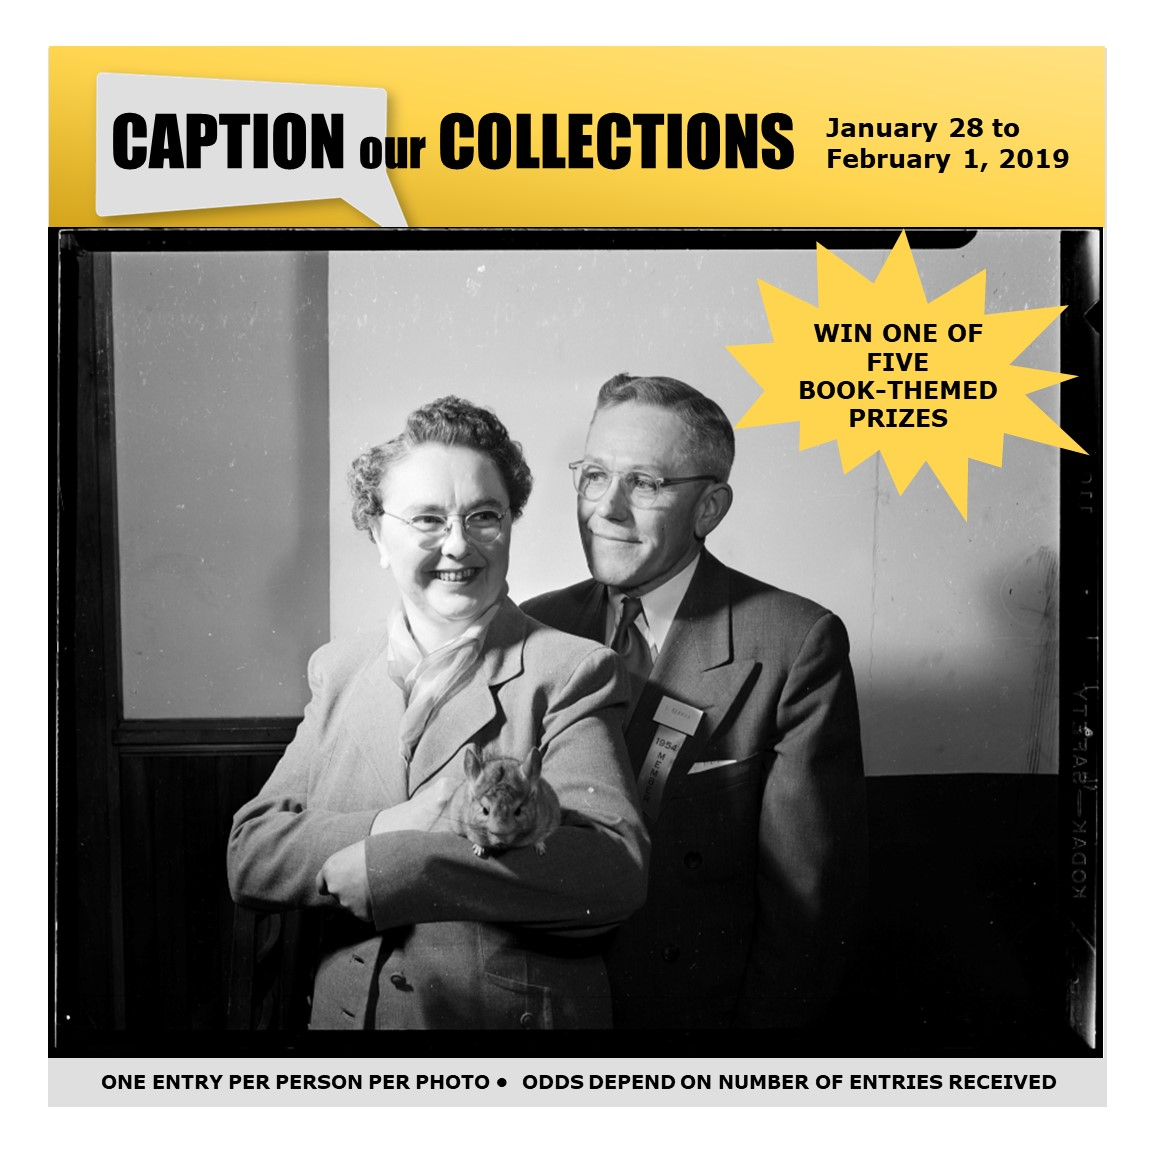 Caption our collections contest